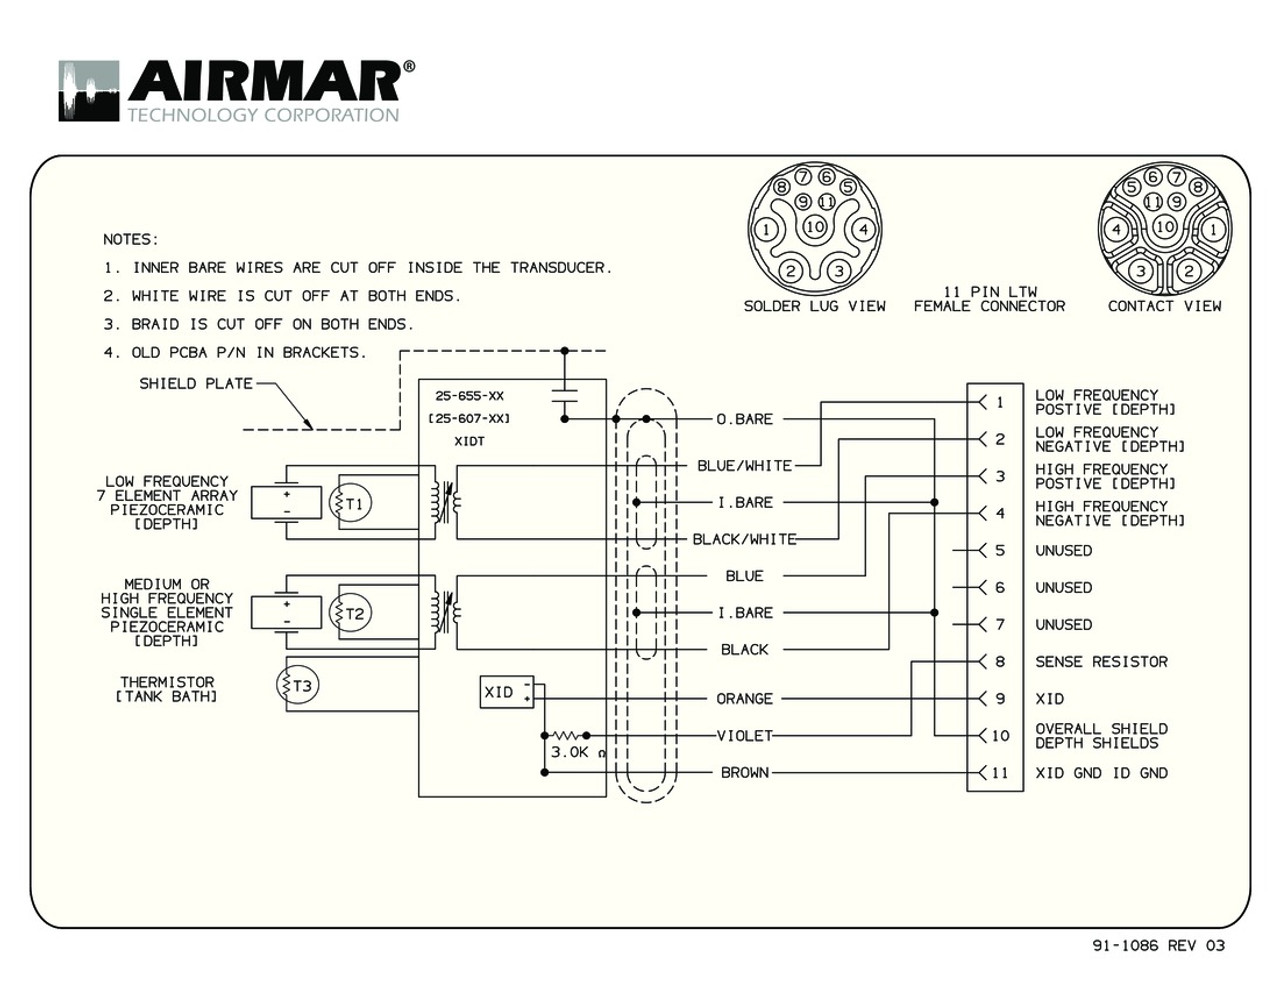 Airmar Wiring Diagram M265 | Blue Bottle Marine on marine gauges, marine wiring layout, speaker schematic, marine battery, marine fuses, marine wiring code, marine wiring guide, marine repair,